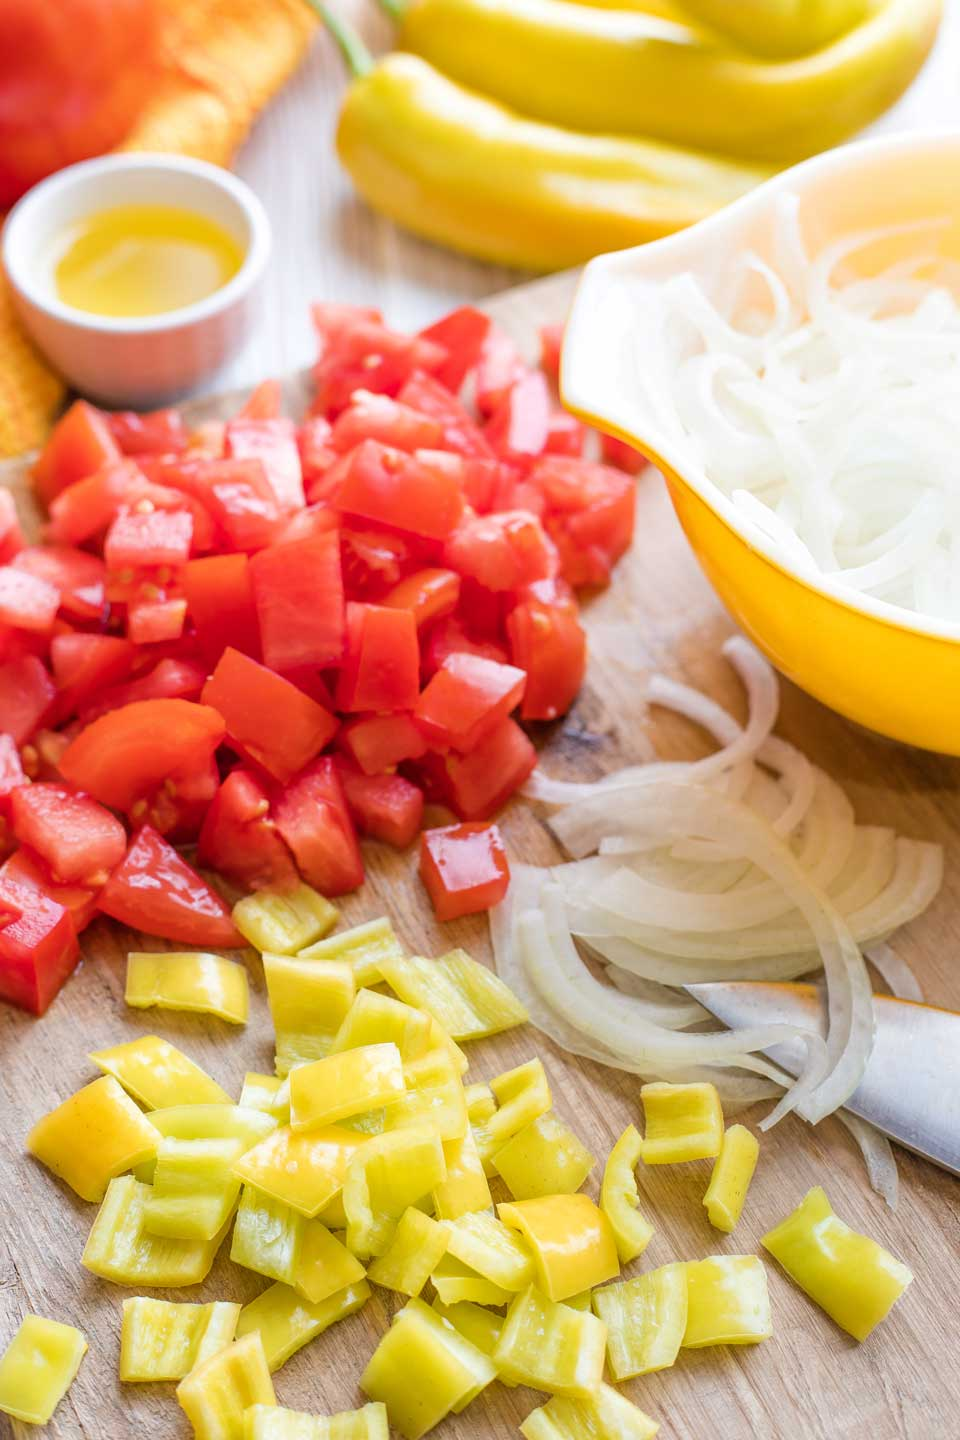 Cutting board with piles of cut tomato, onion and pepper, with salad bowl and other ingredients nearby.